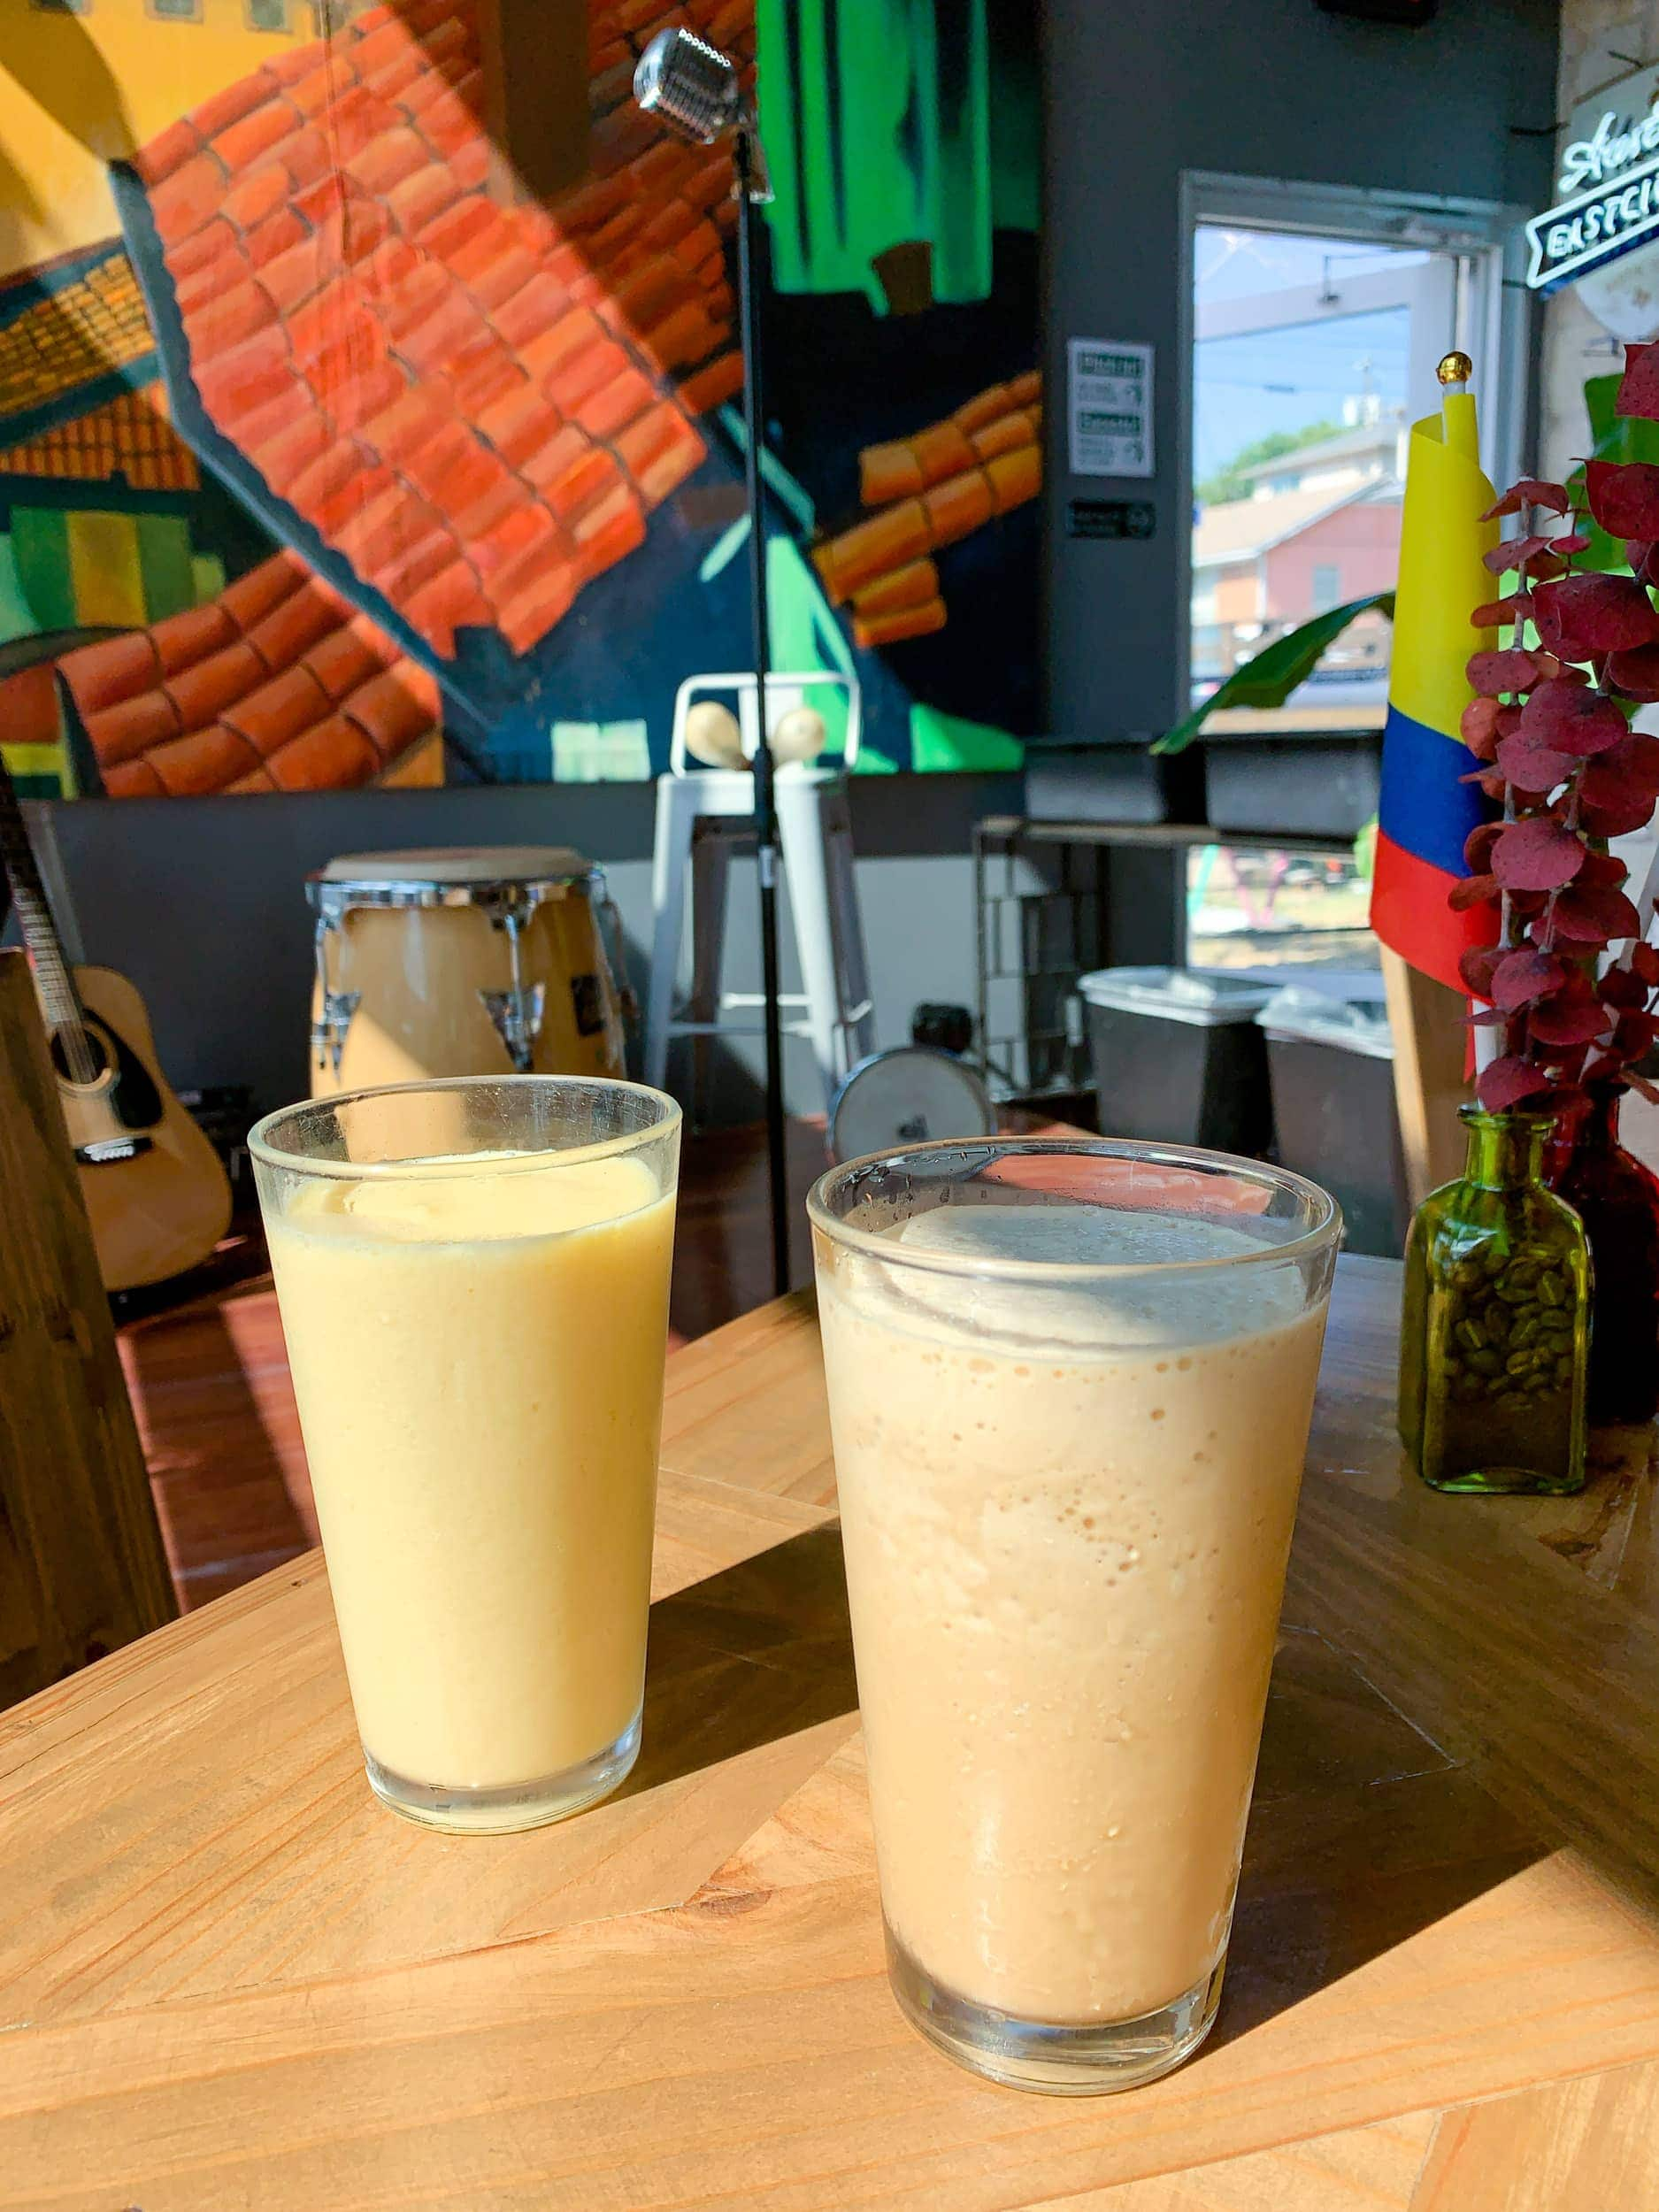 Fruit smoothie and iced coffee at Plaza Colombian Coffee